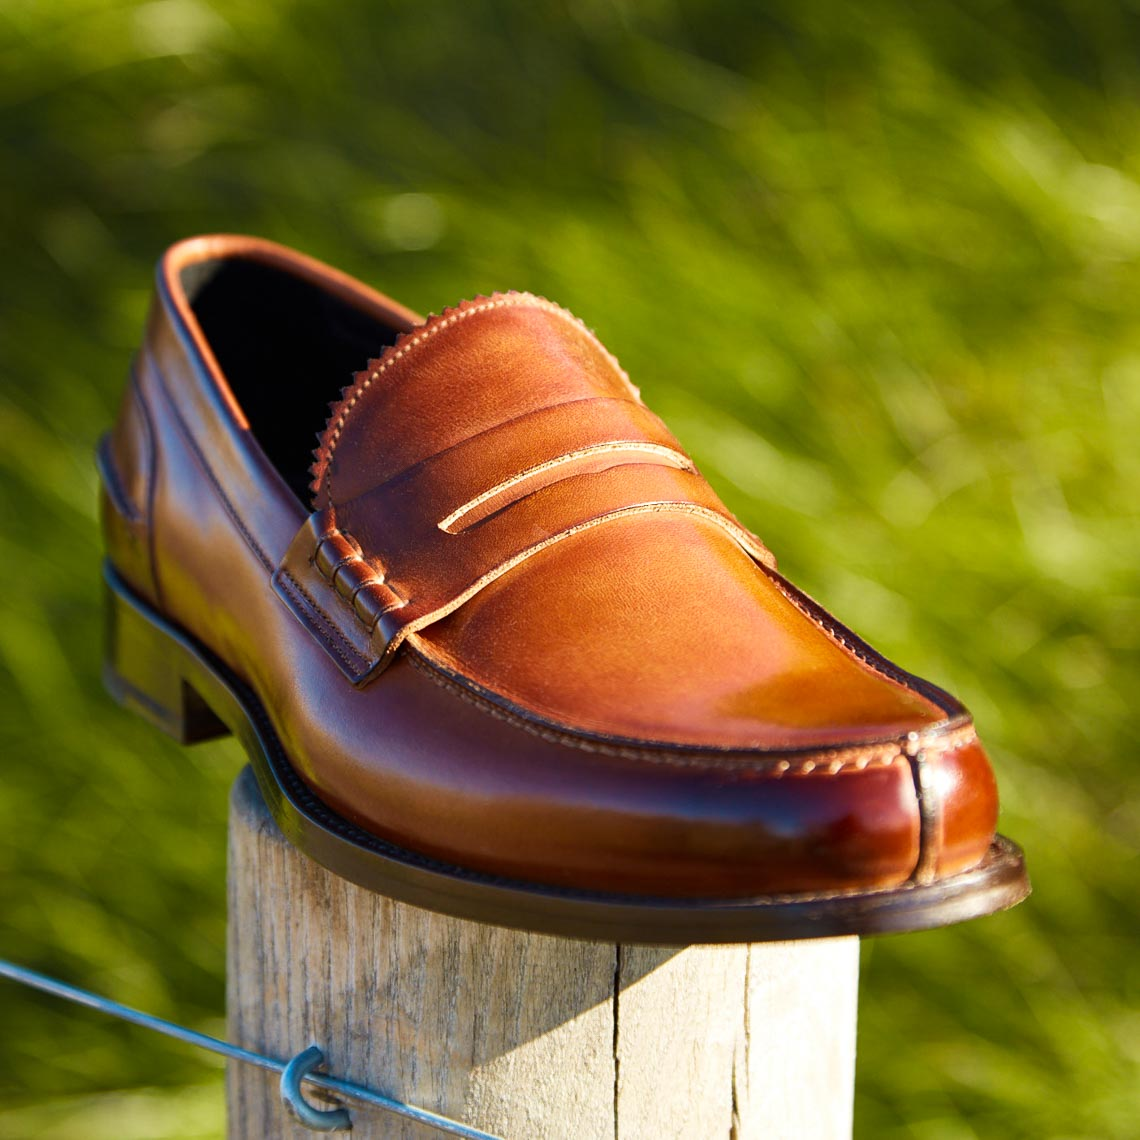 Mens dark brown leather dress shoes shot in the park for Paul Stuart shoes in NYC